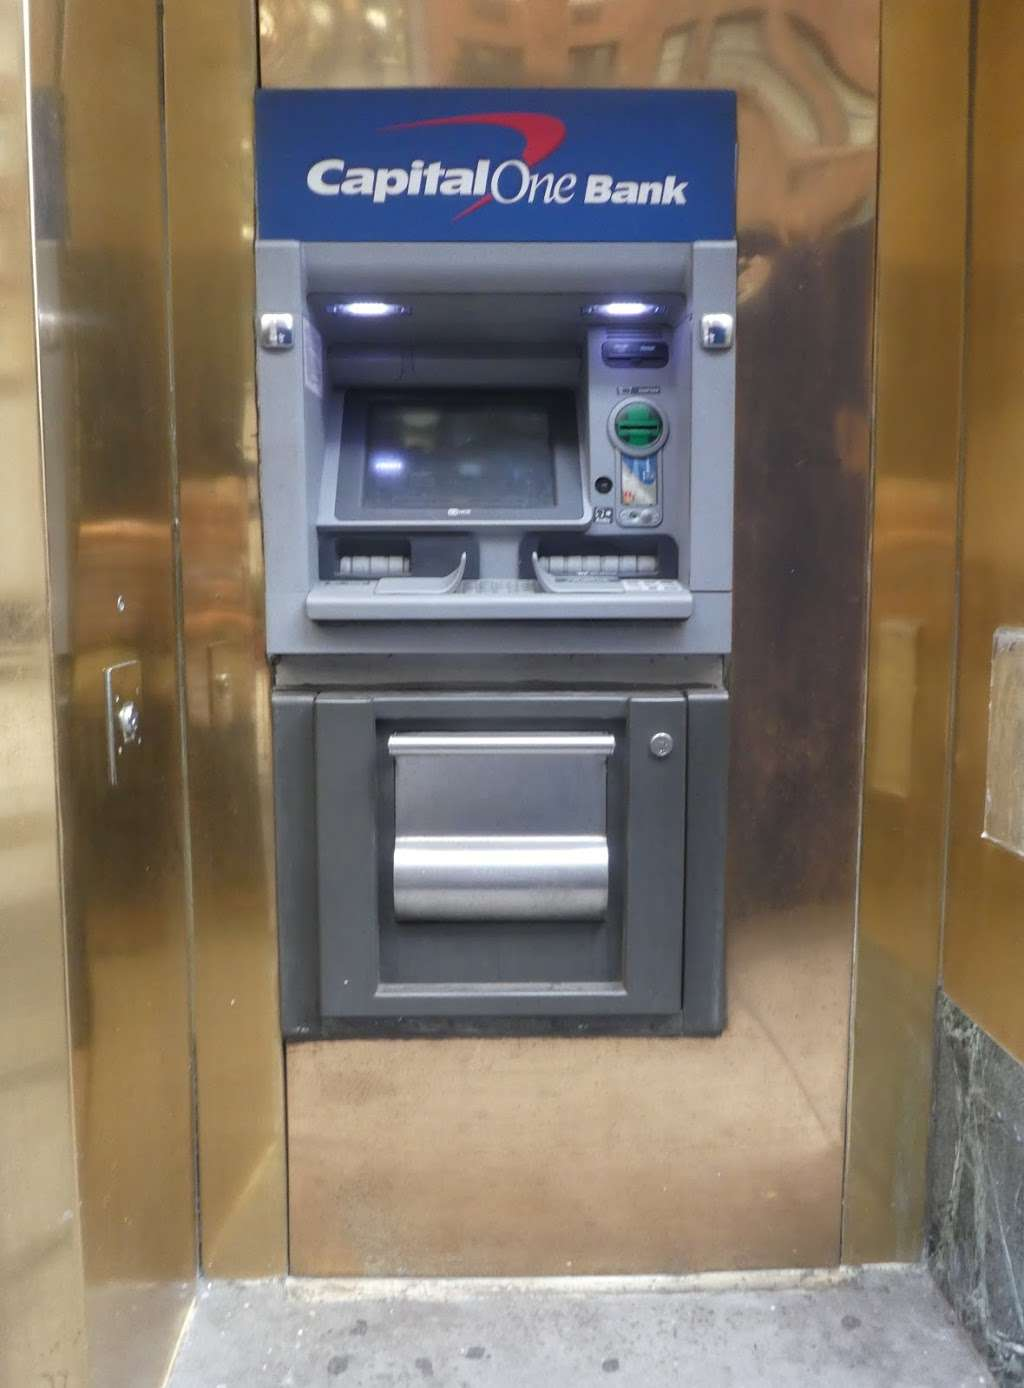 Capital One ATM - atm  | Photo 1 of 1 | Address: 1180 3rd Ave # 69th, New York, NY 10065, USA | Phone: (800) 262-5689